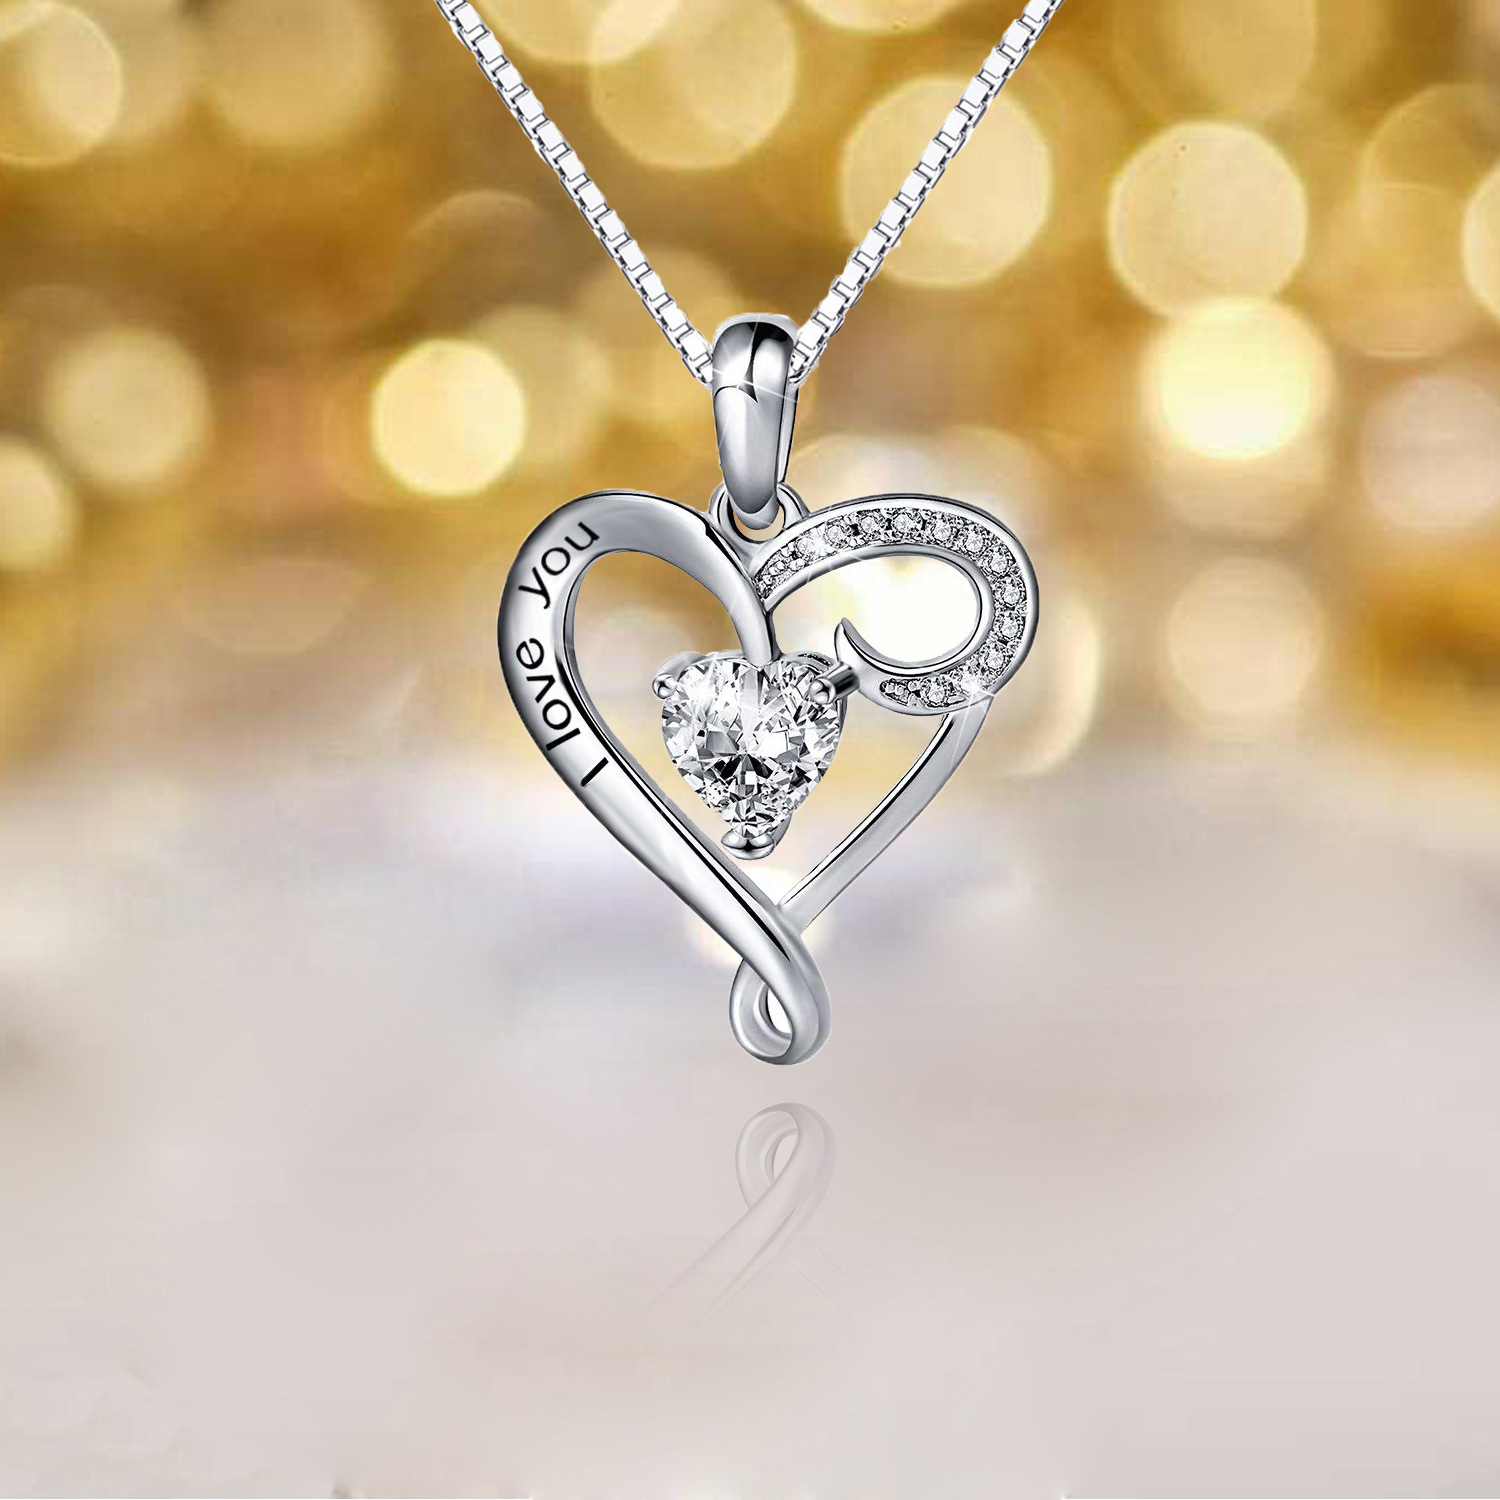 Fashion mom heart necklace 925 sterling silver jewelry